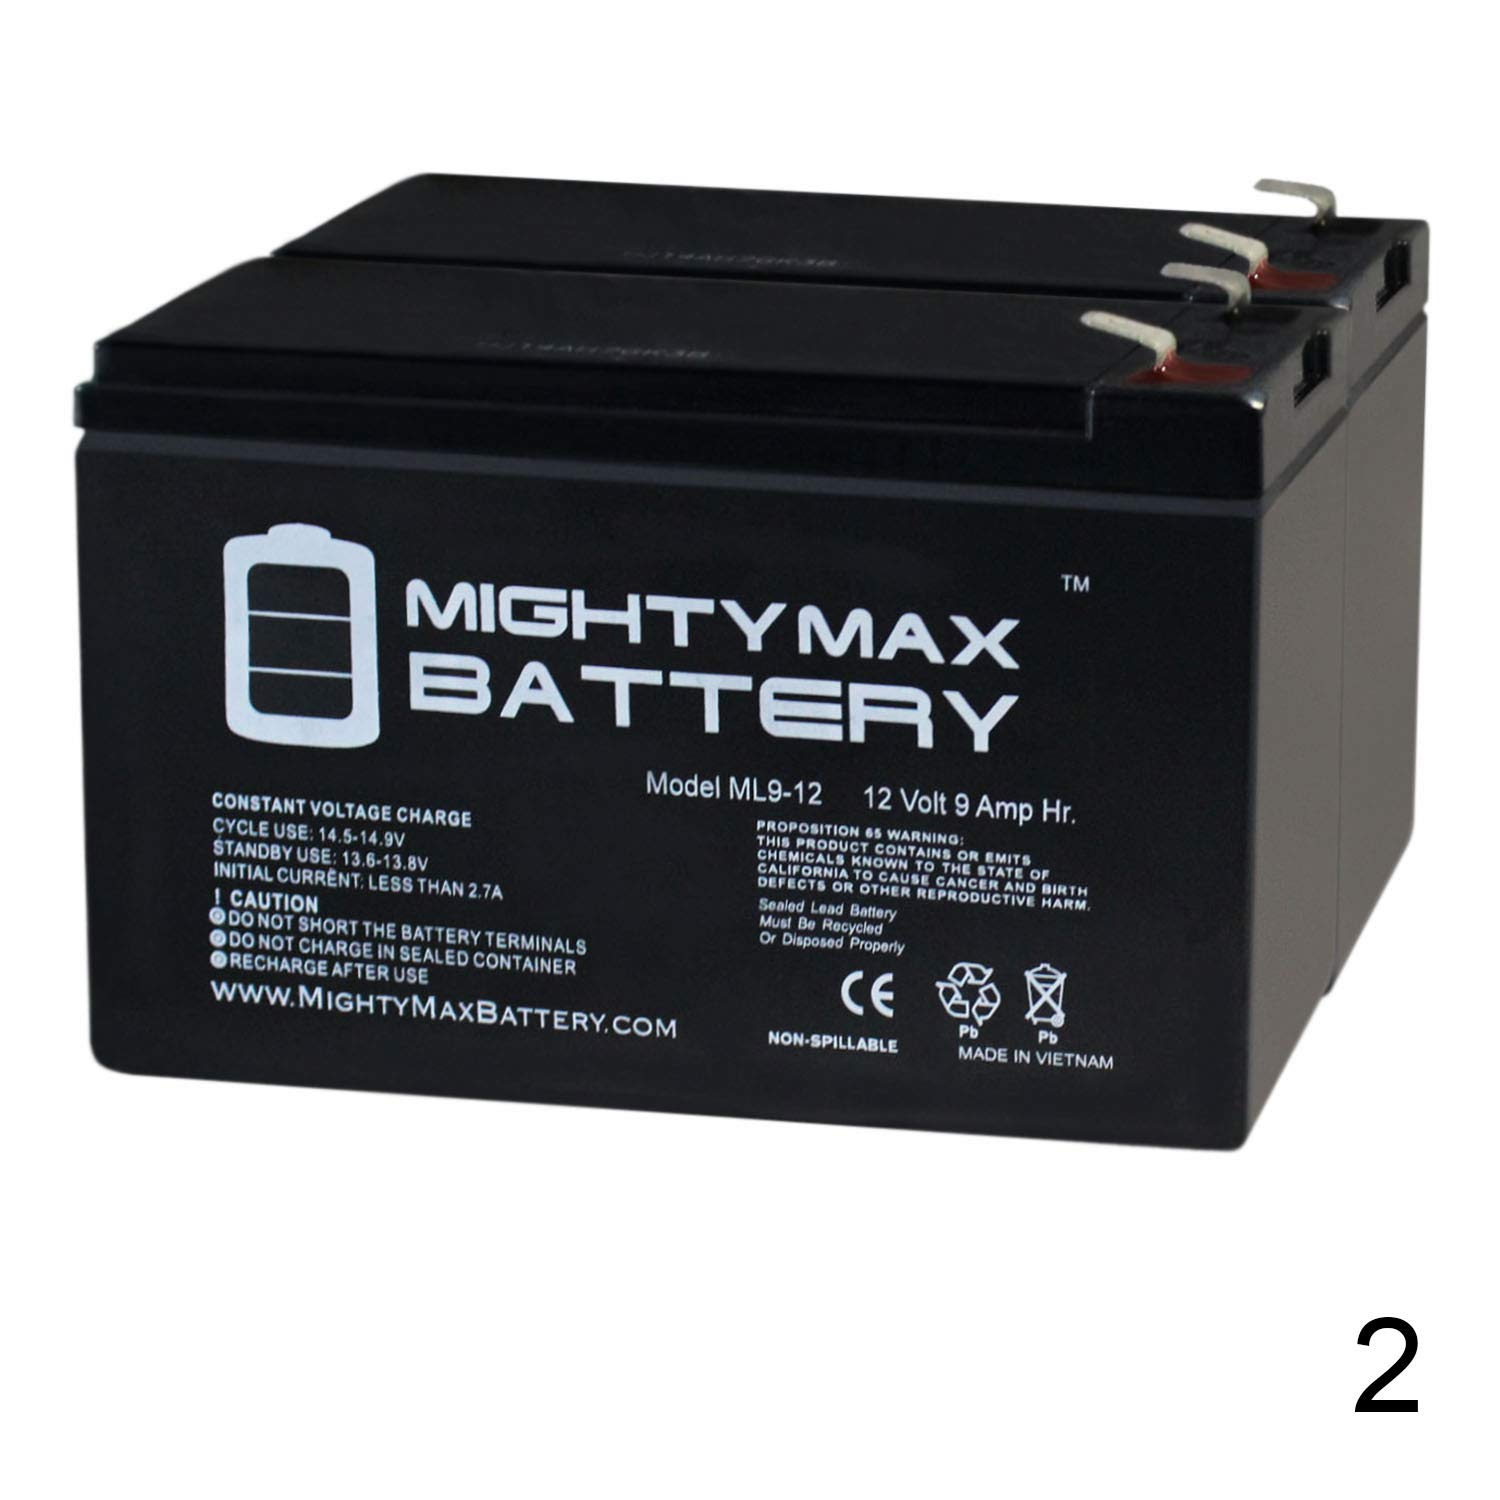 Mighty Max Battery 12V 9AH Replacement for Razor Pocket Mod Electric Scooter - 2 Pack Brand Product